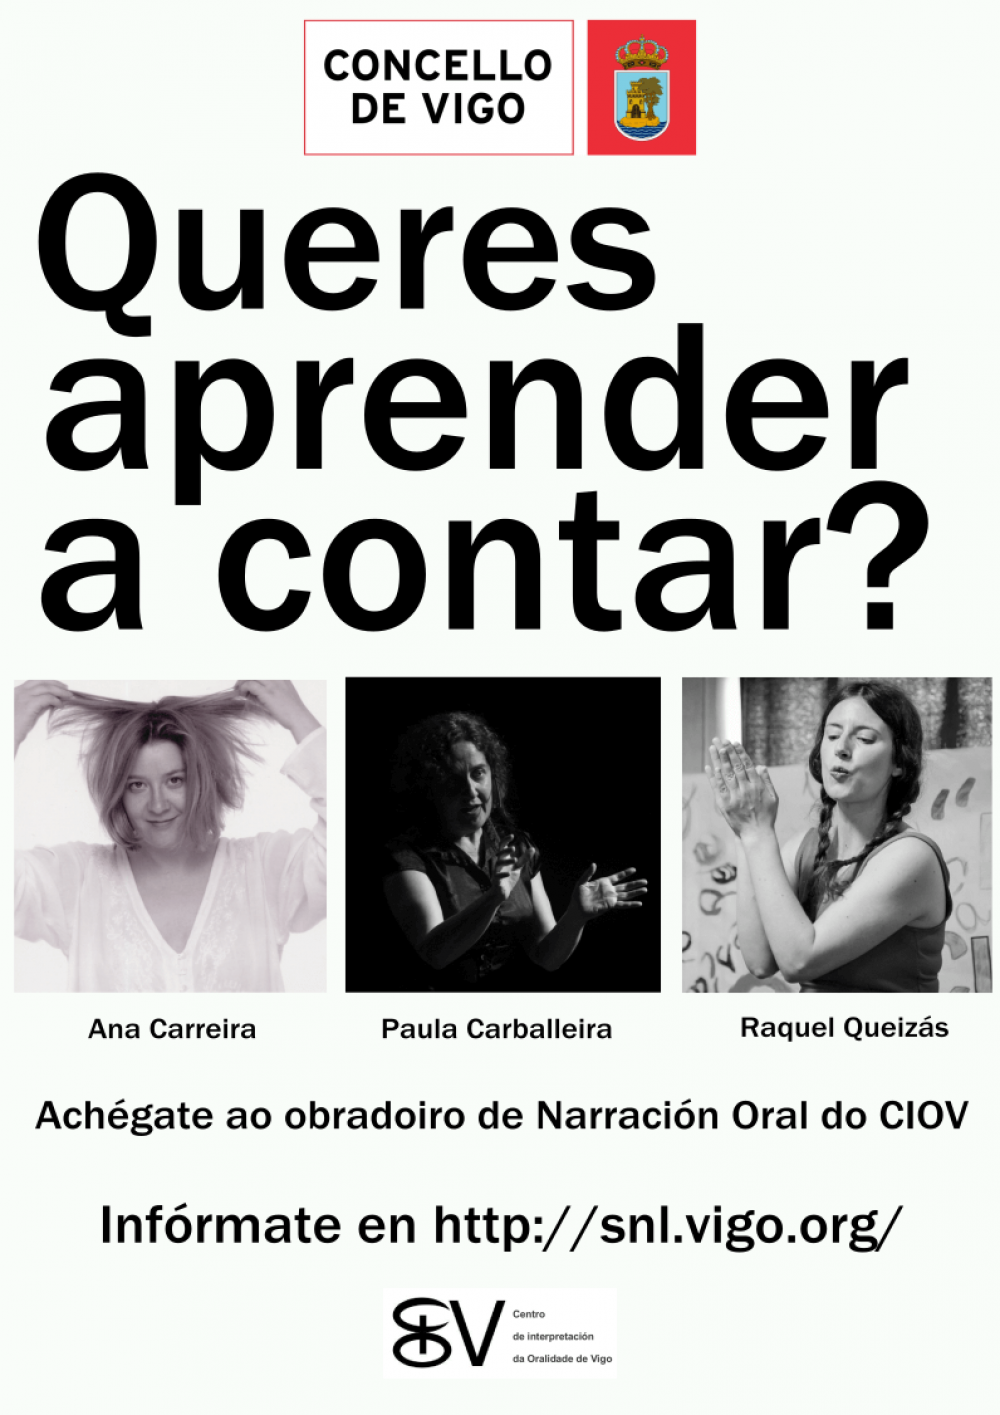 CIOV-Curso de narración oral